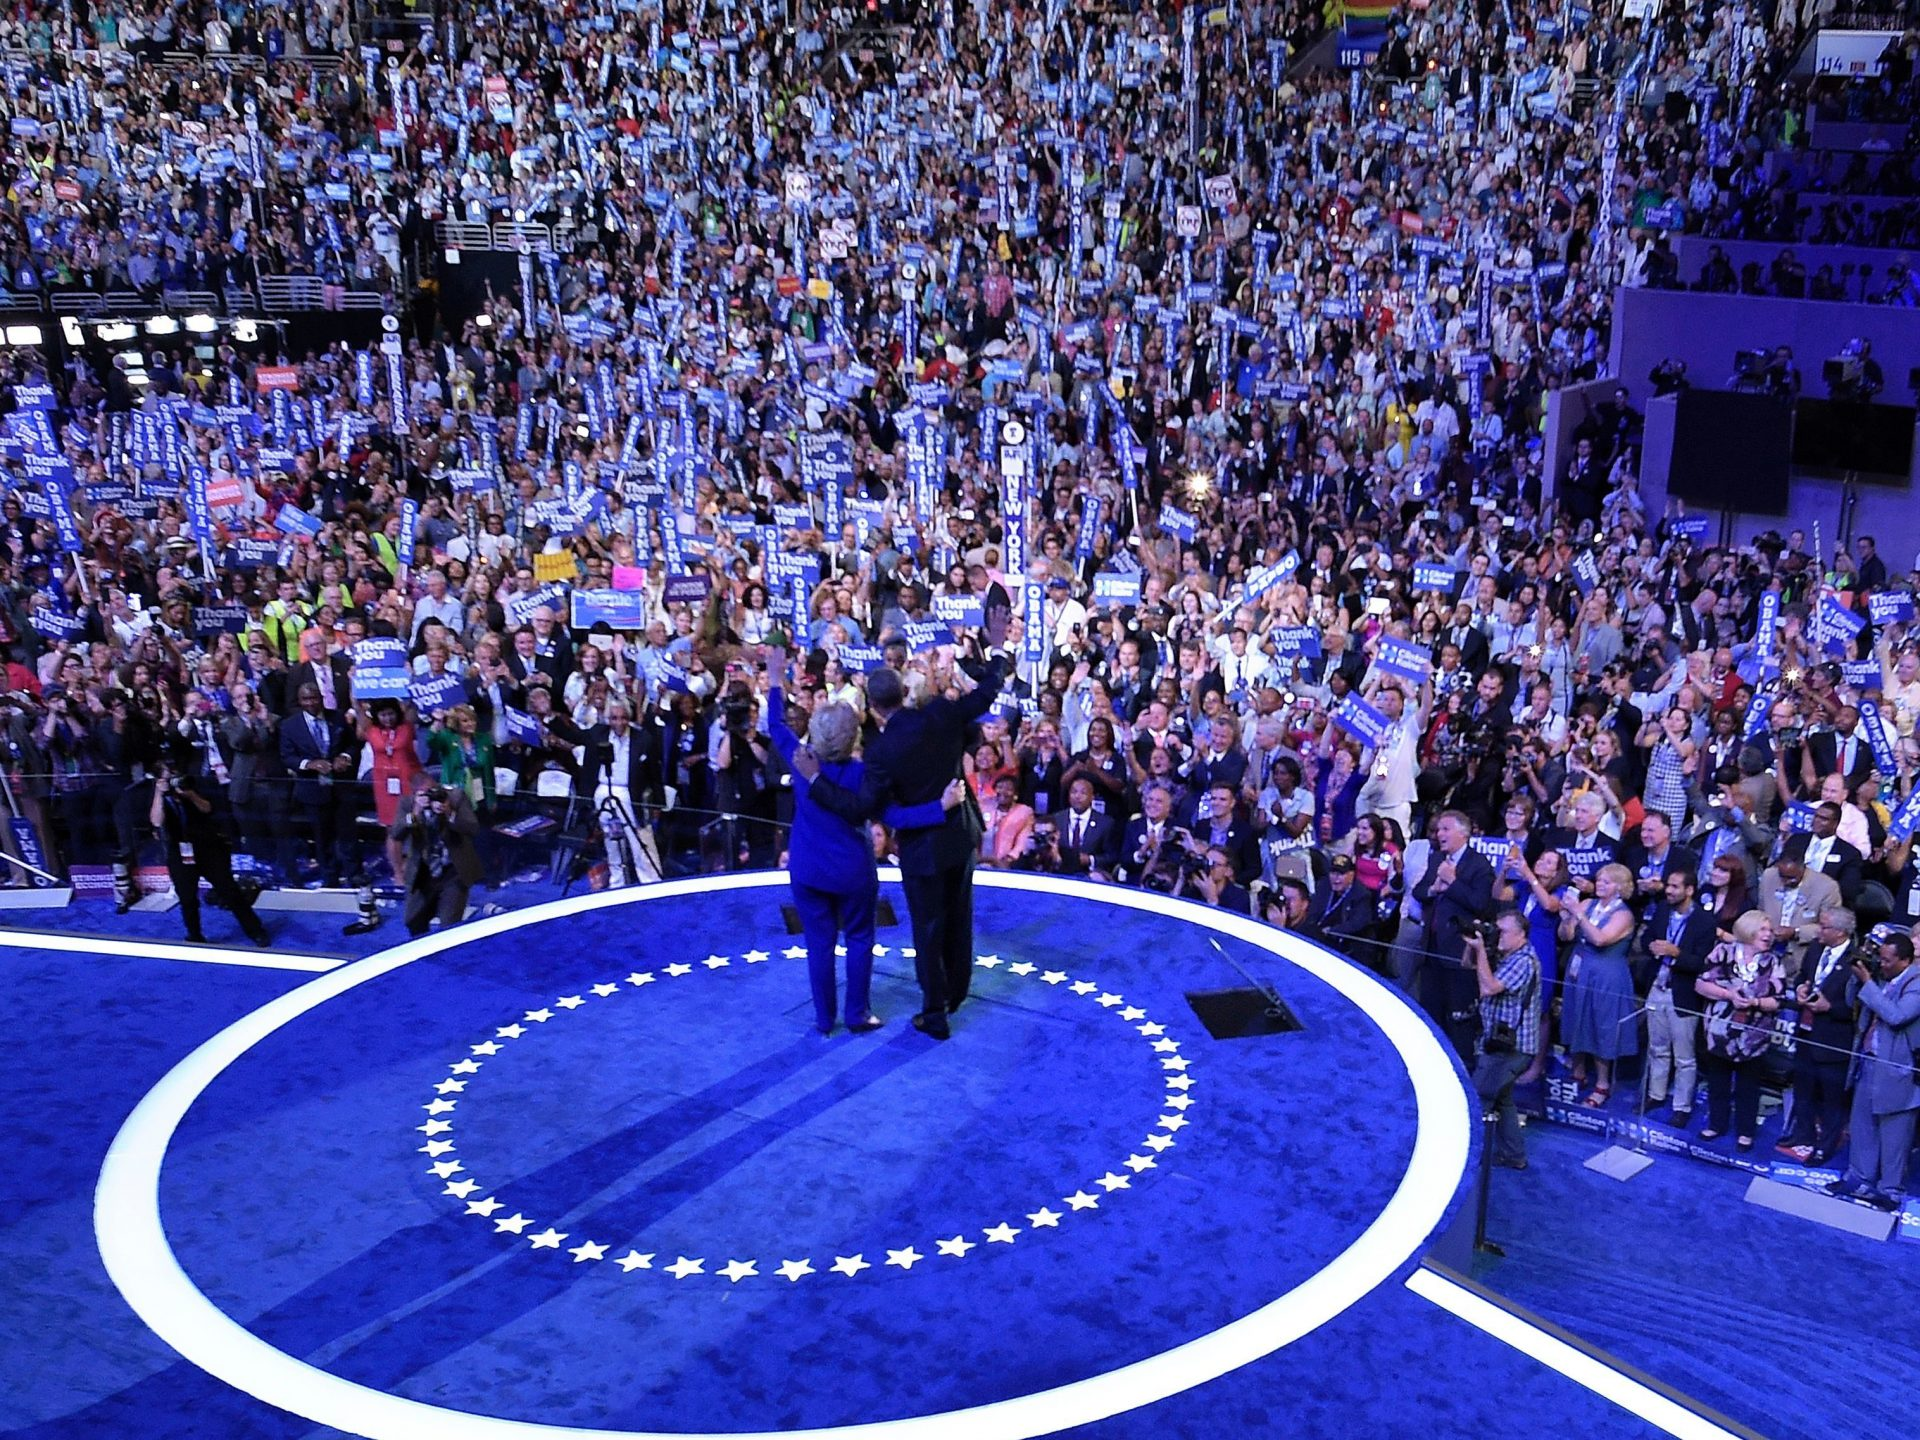 Hillary Clinton embraces President Obama after his address to the Democratic National Convention in Philadelphia in 2016.